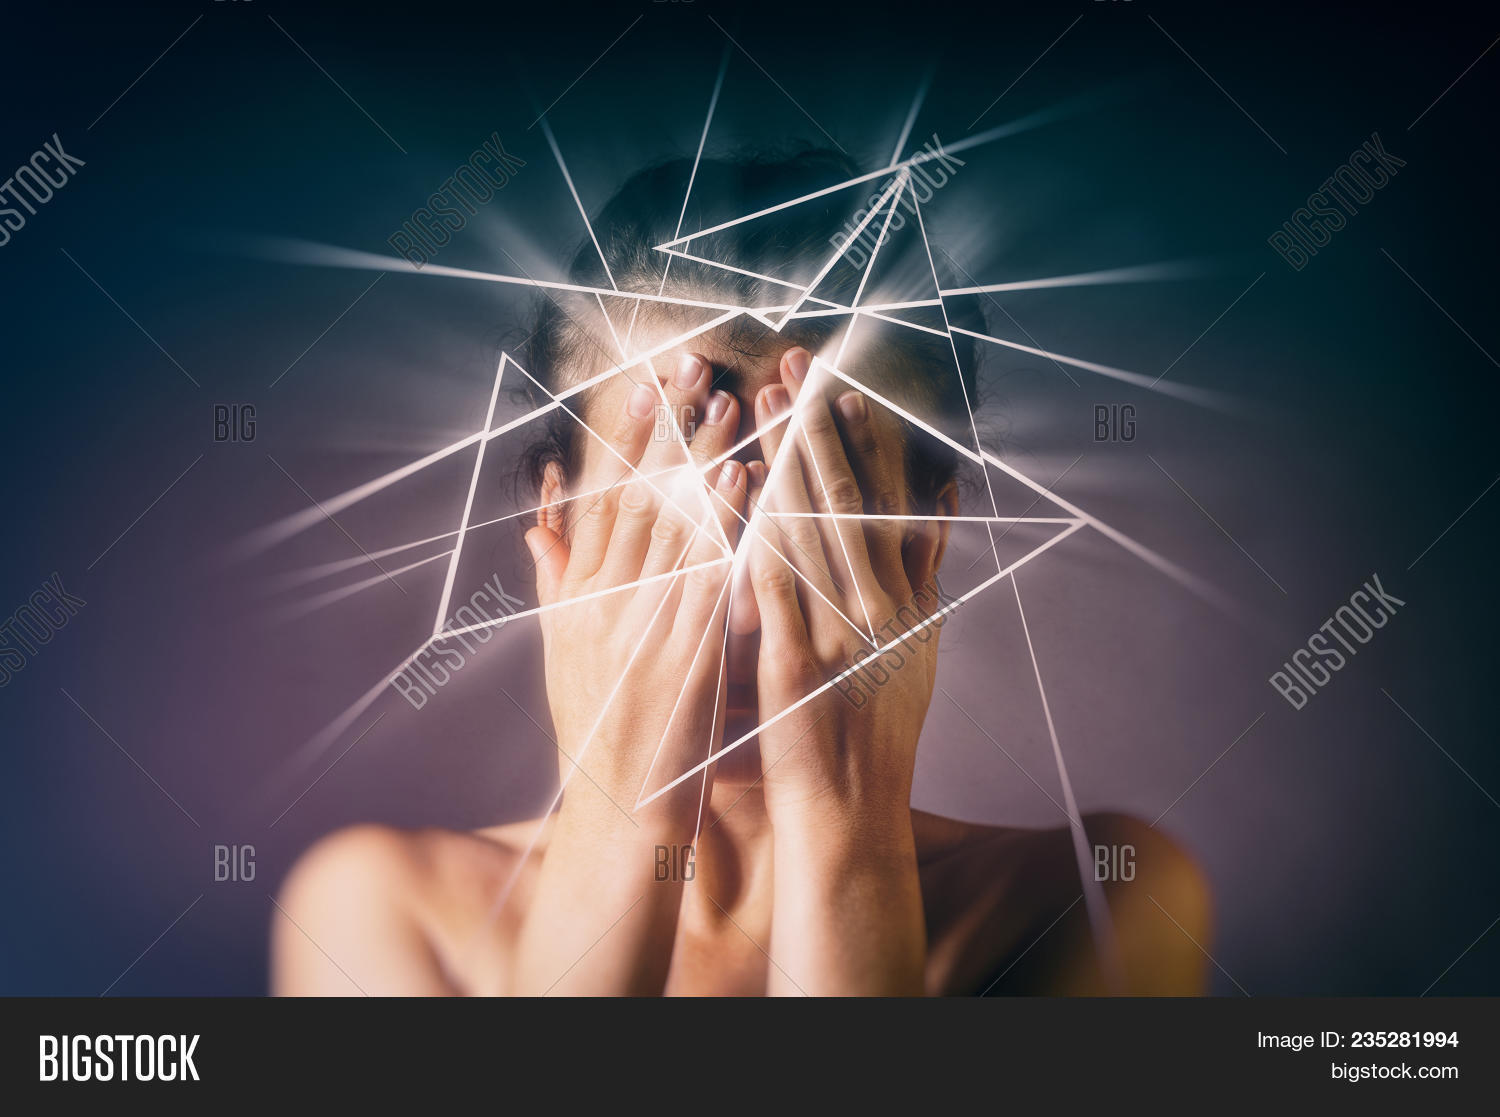 Woman Covers Her Face Image Photo Free Trial Bigstock